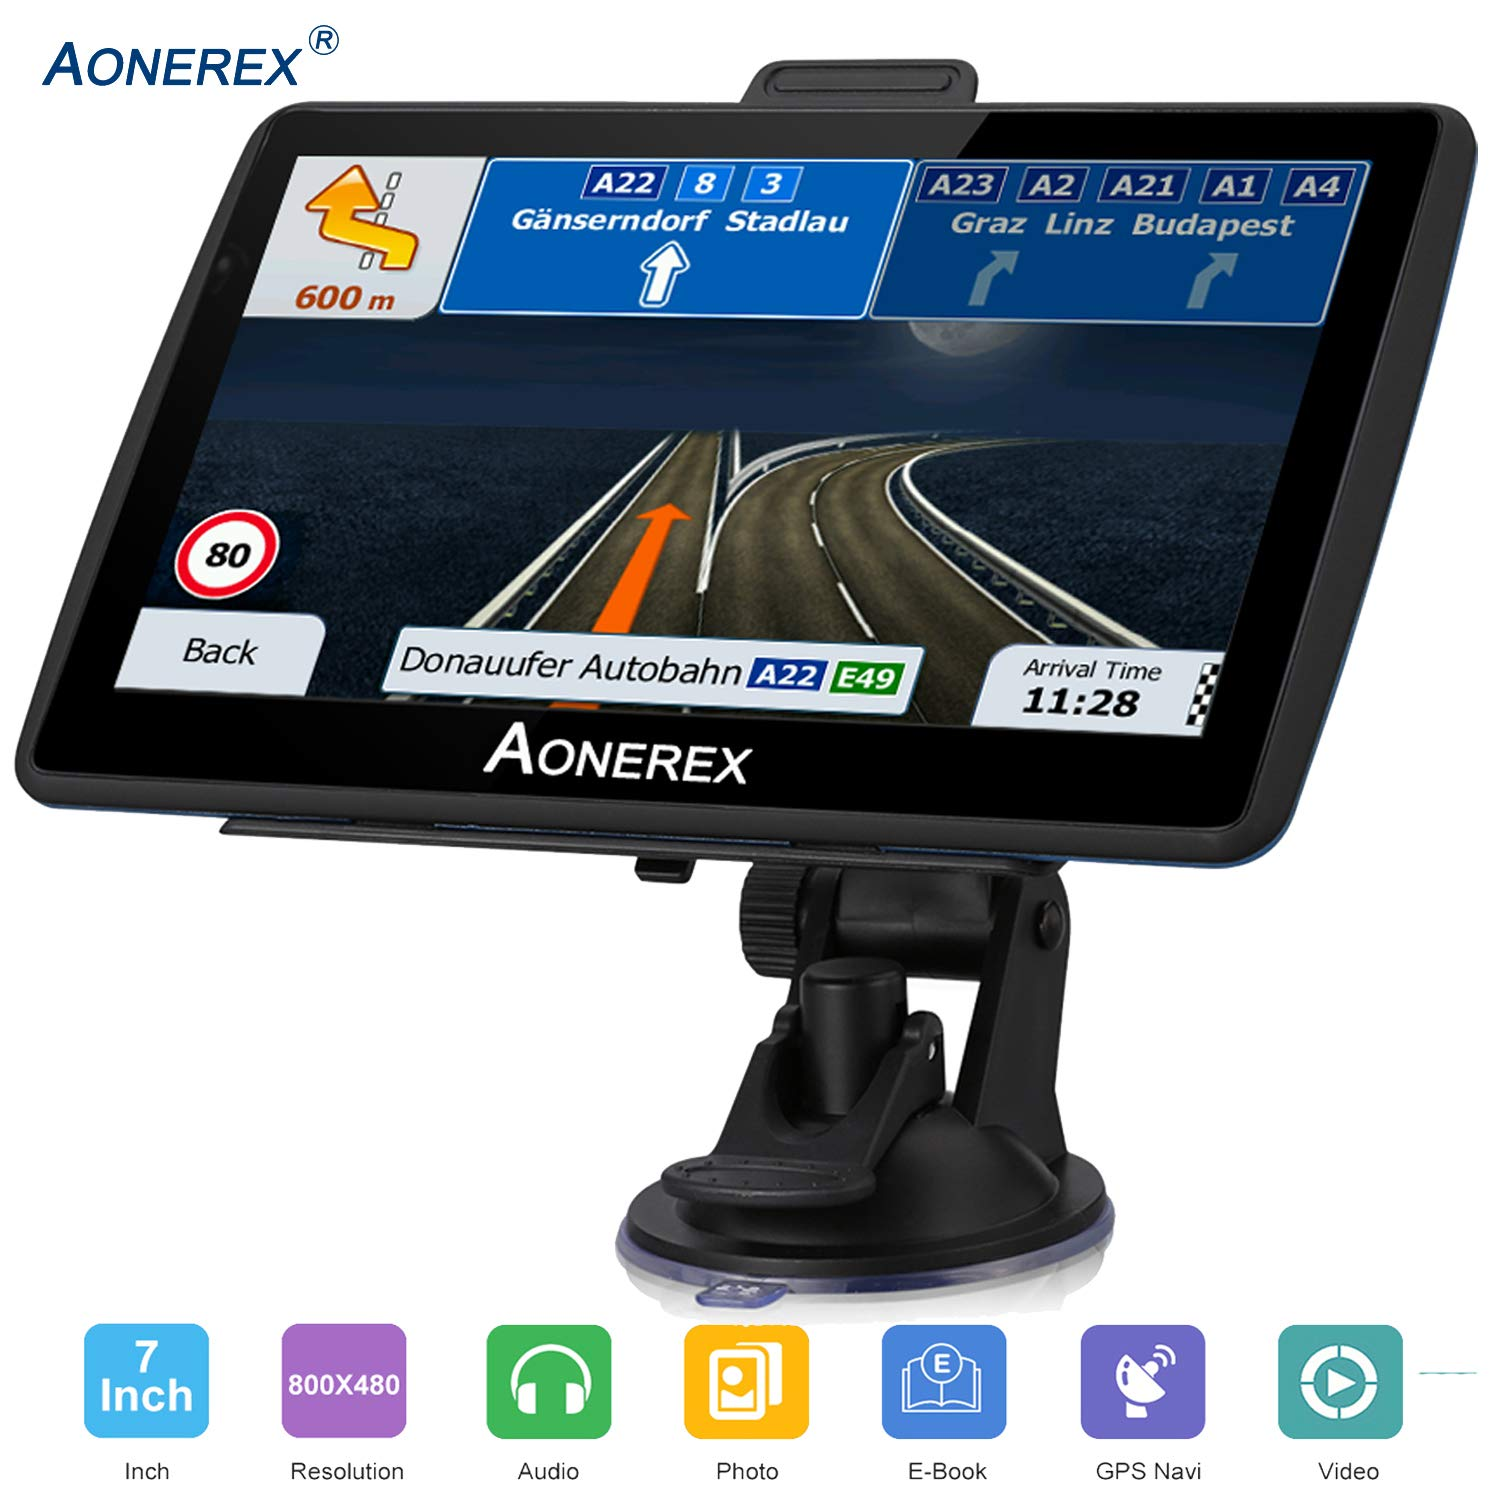 Aonerex GPS Navigation for car 7 inch Touch Screen +256MB 8GB Voice Prompt GPS Navigation System Built-in Lifetime Maps,Advanced Lane Guidance and Spoken Turn-by-Turn Directions